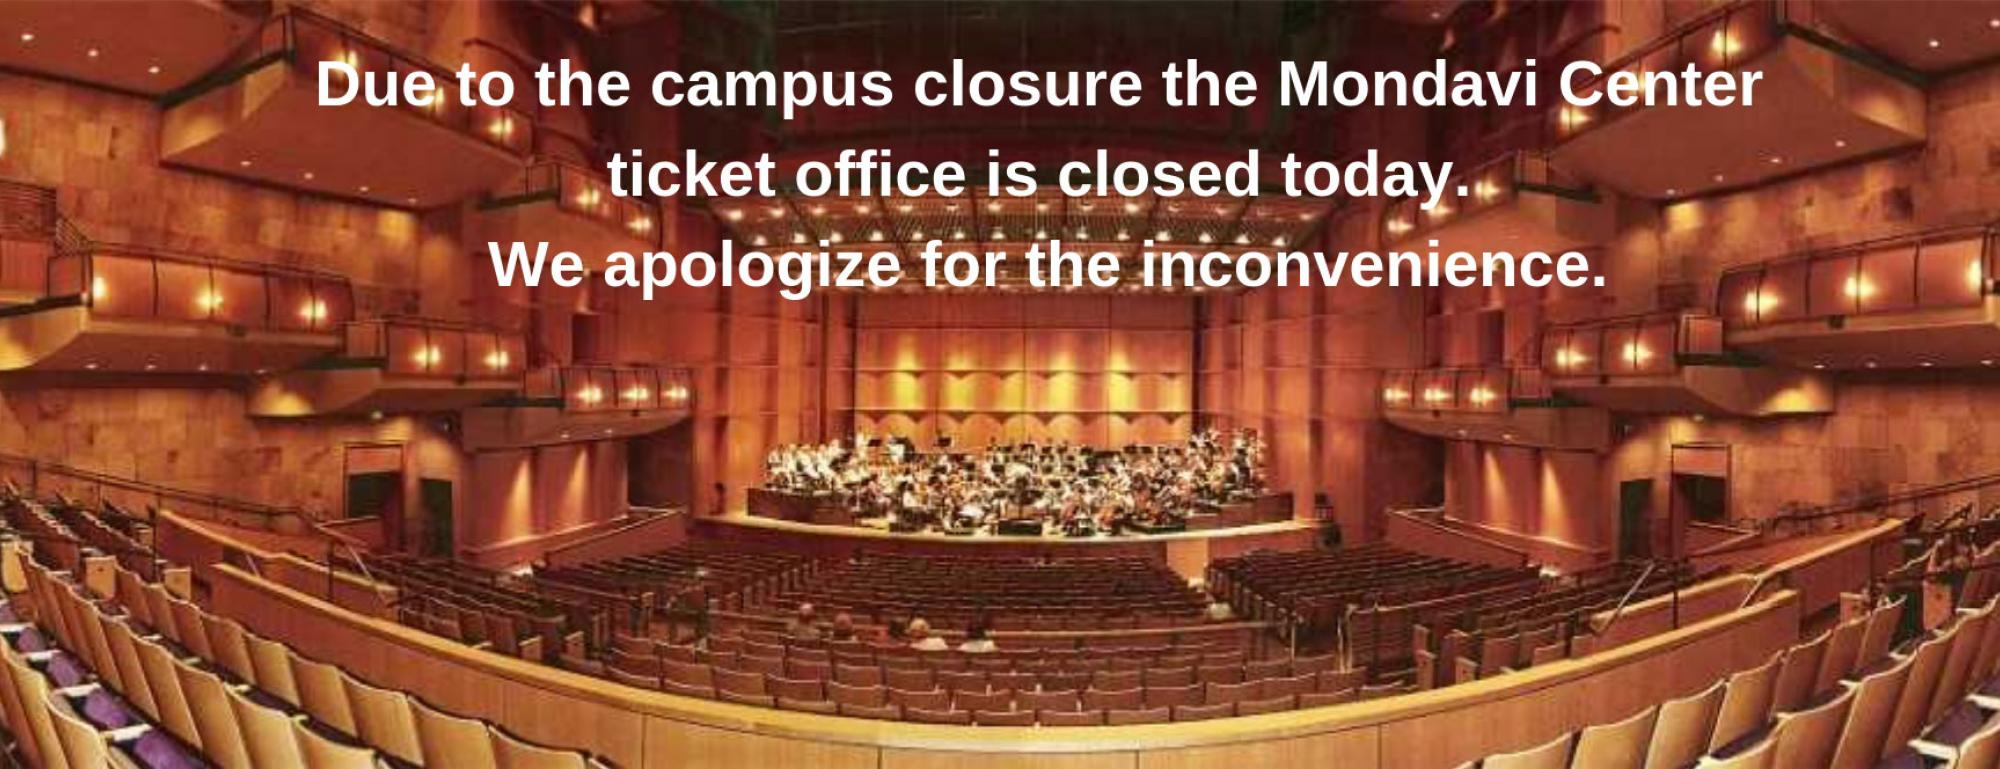 The Mondavi Center Ticket Office is closed today.